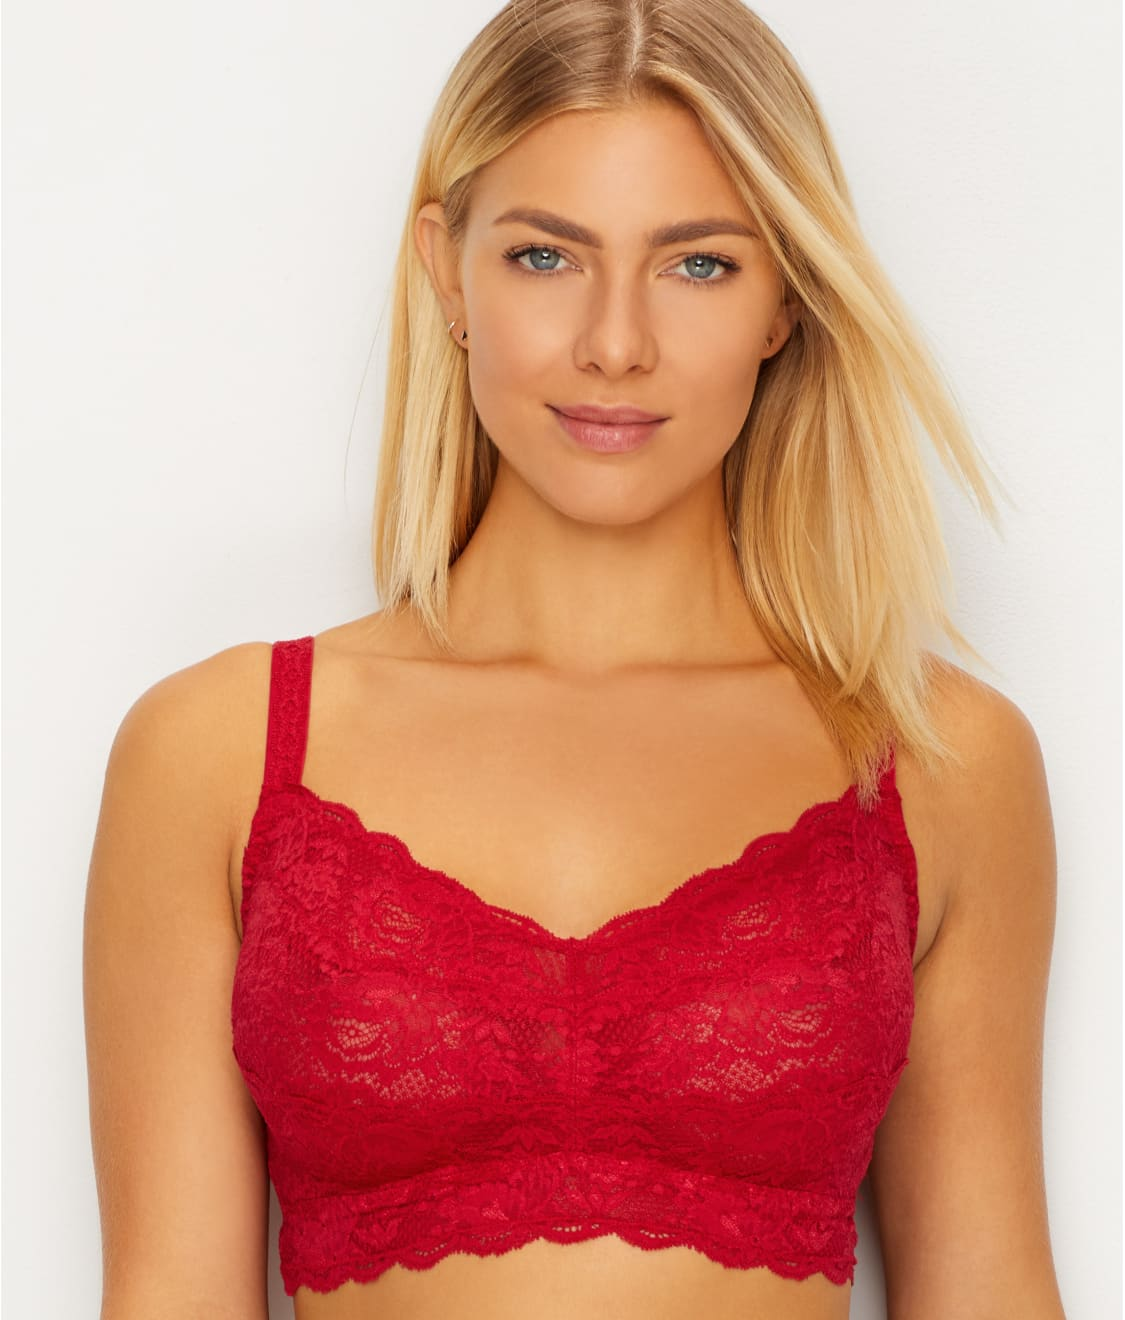 fa4b67b6bab See Never Say Never Sweetie Curvy Bralette in Mystic Red